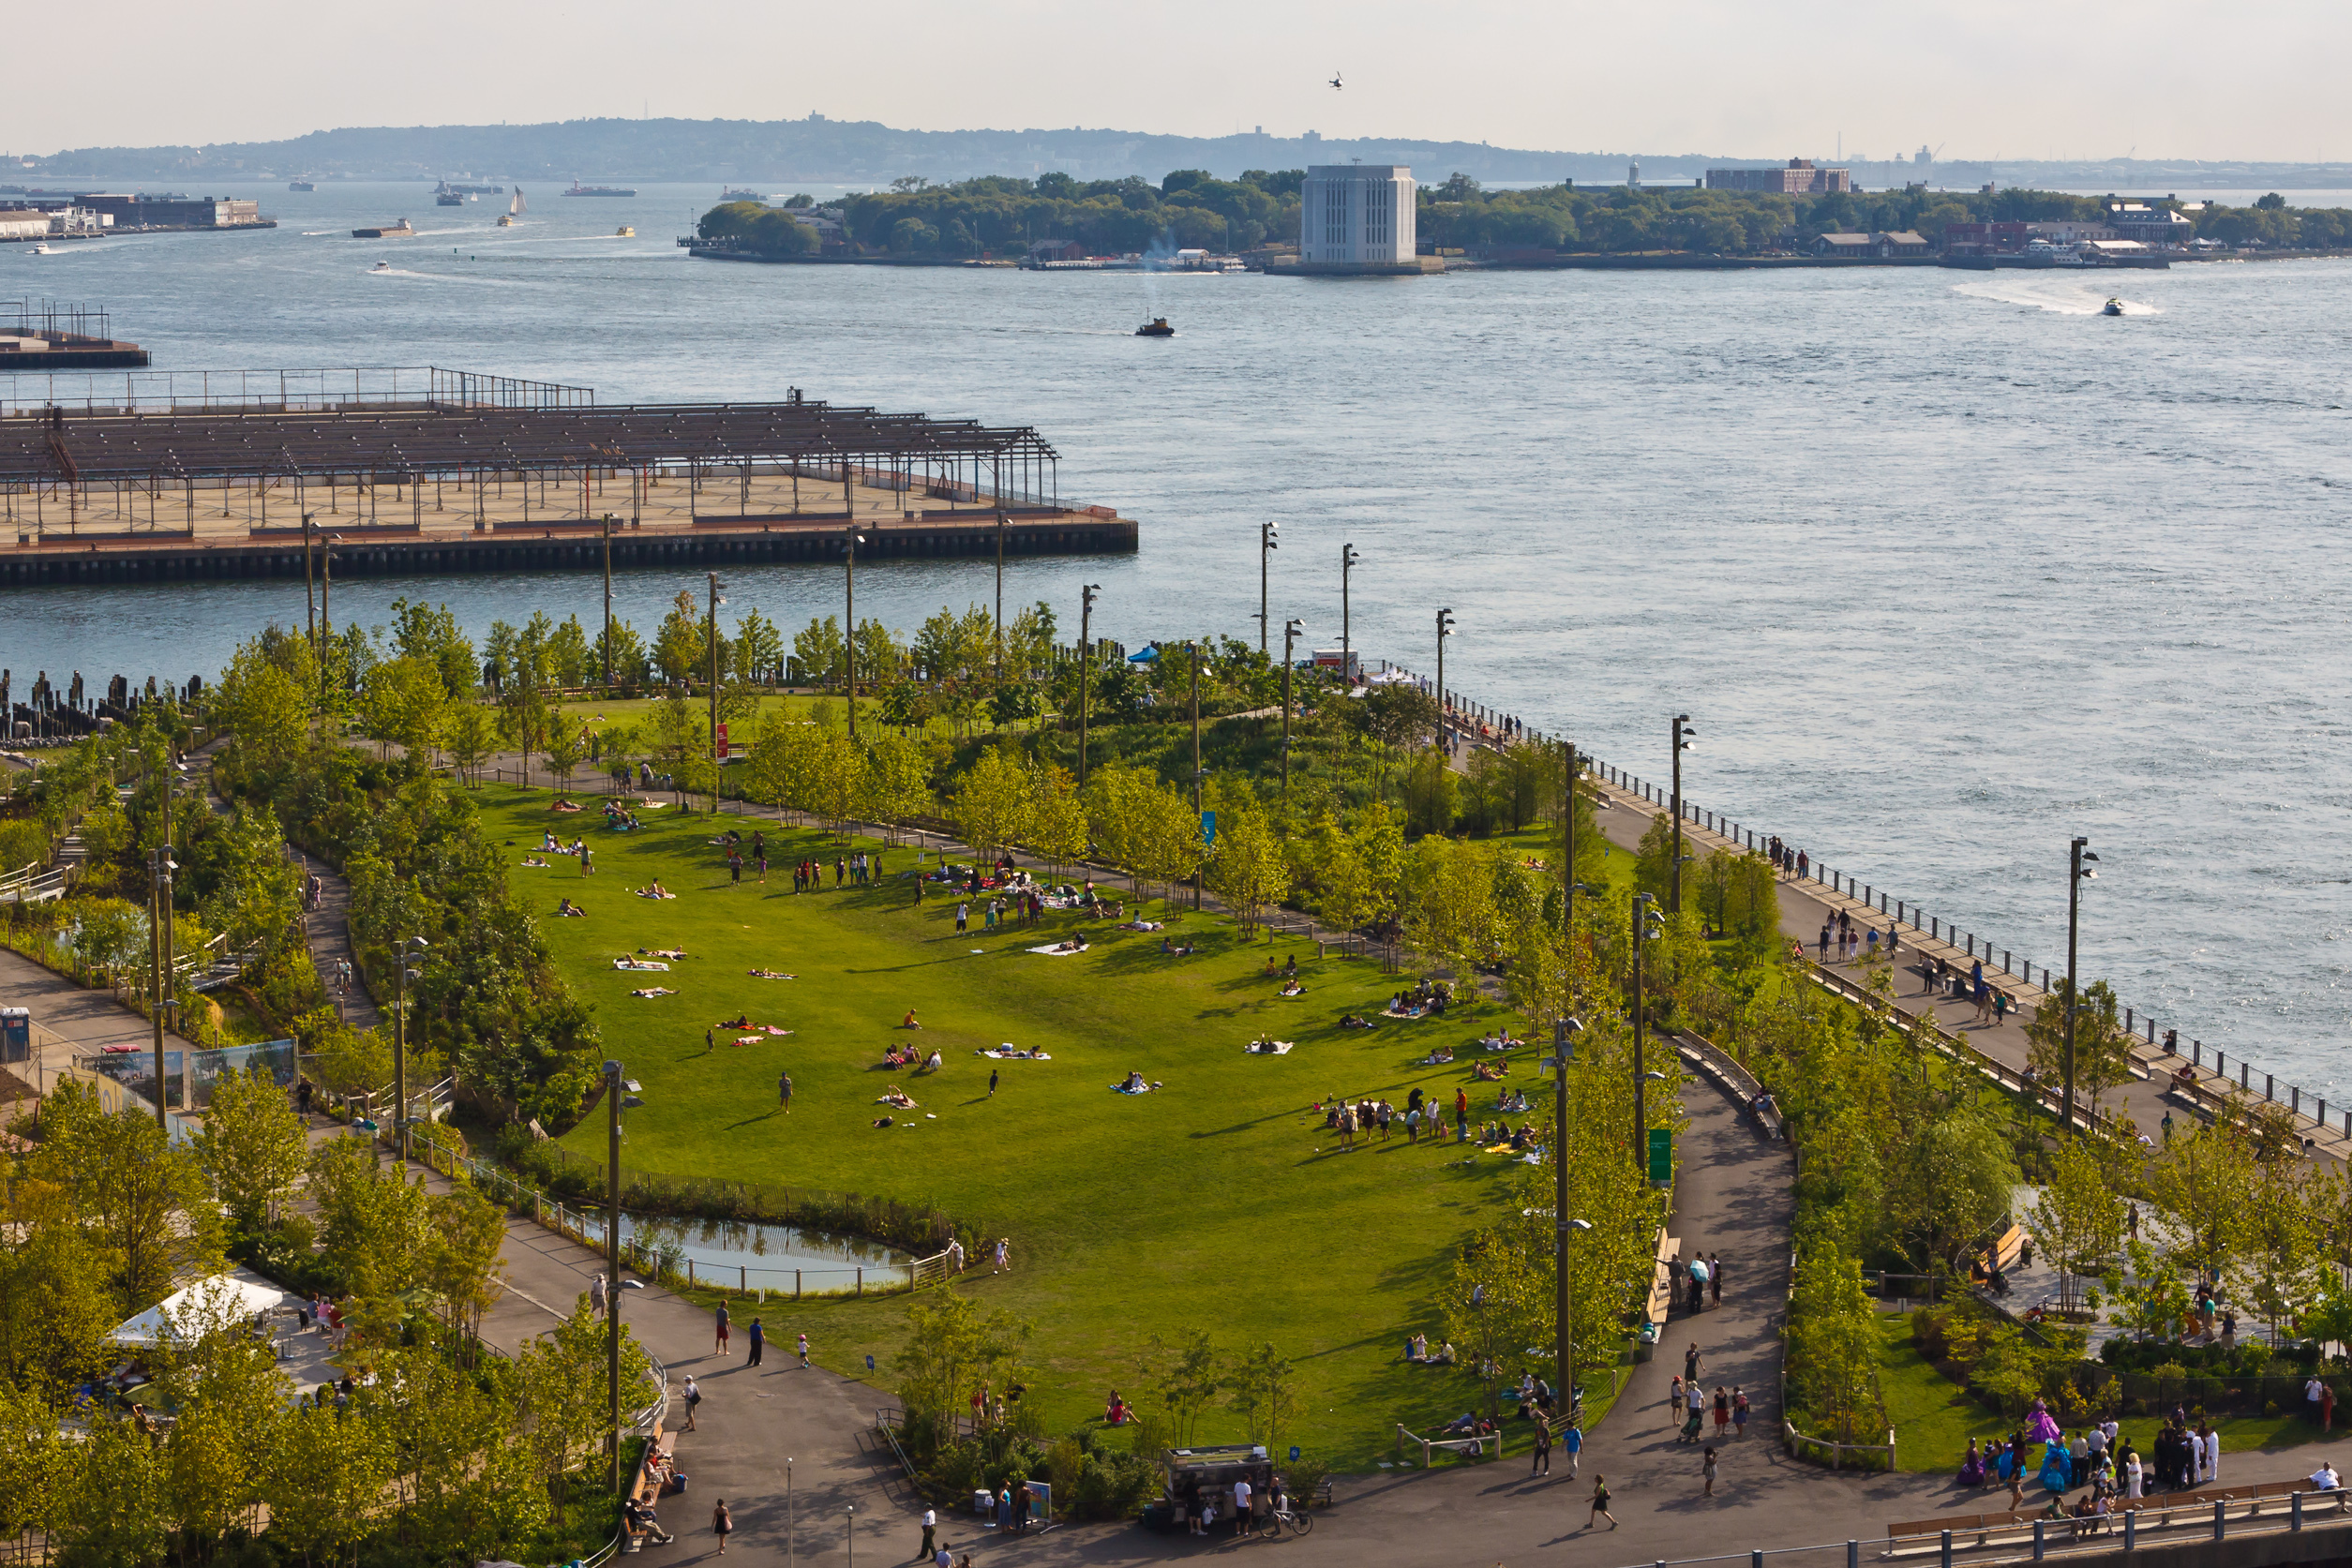 A new waterfront park in Brooklyn, with a view of Governors Island in the distance.